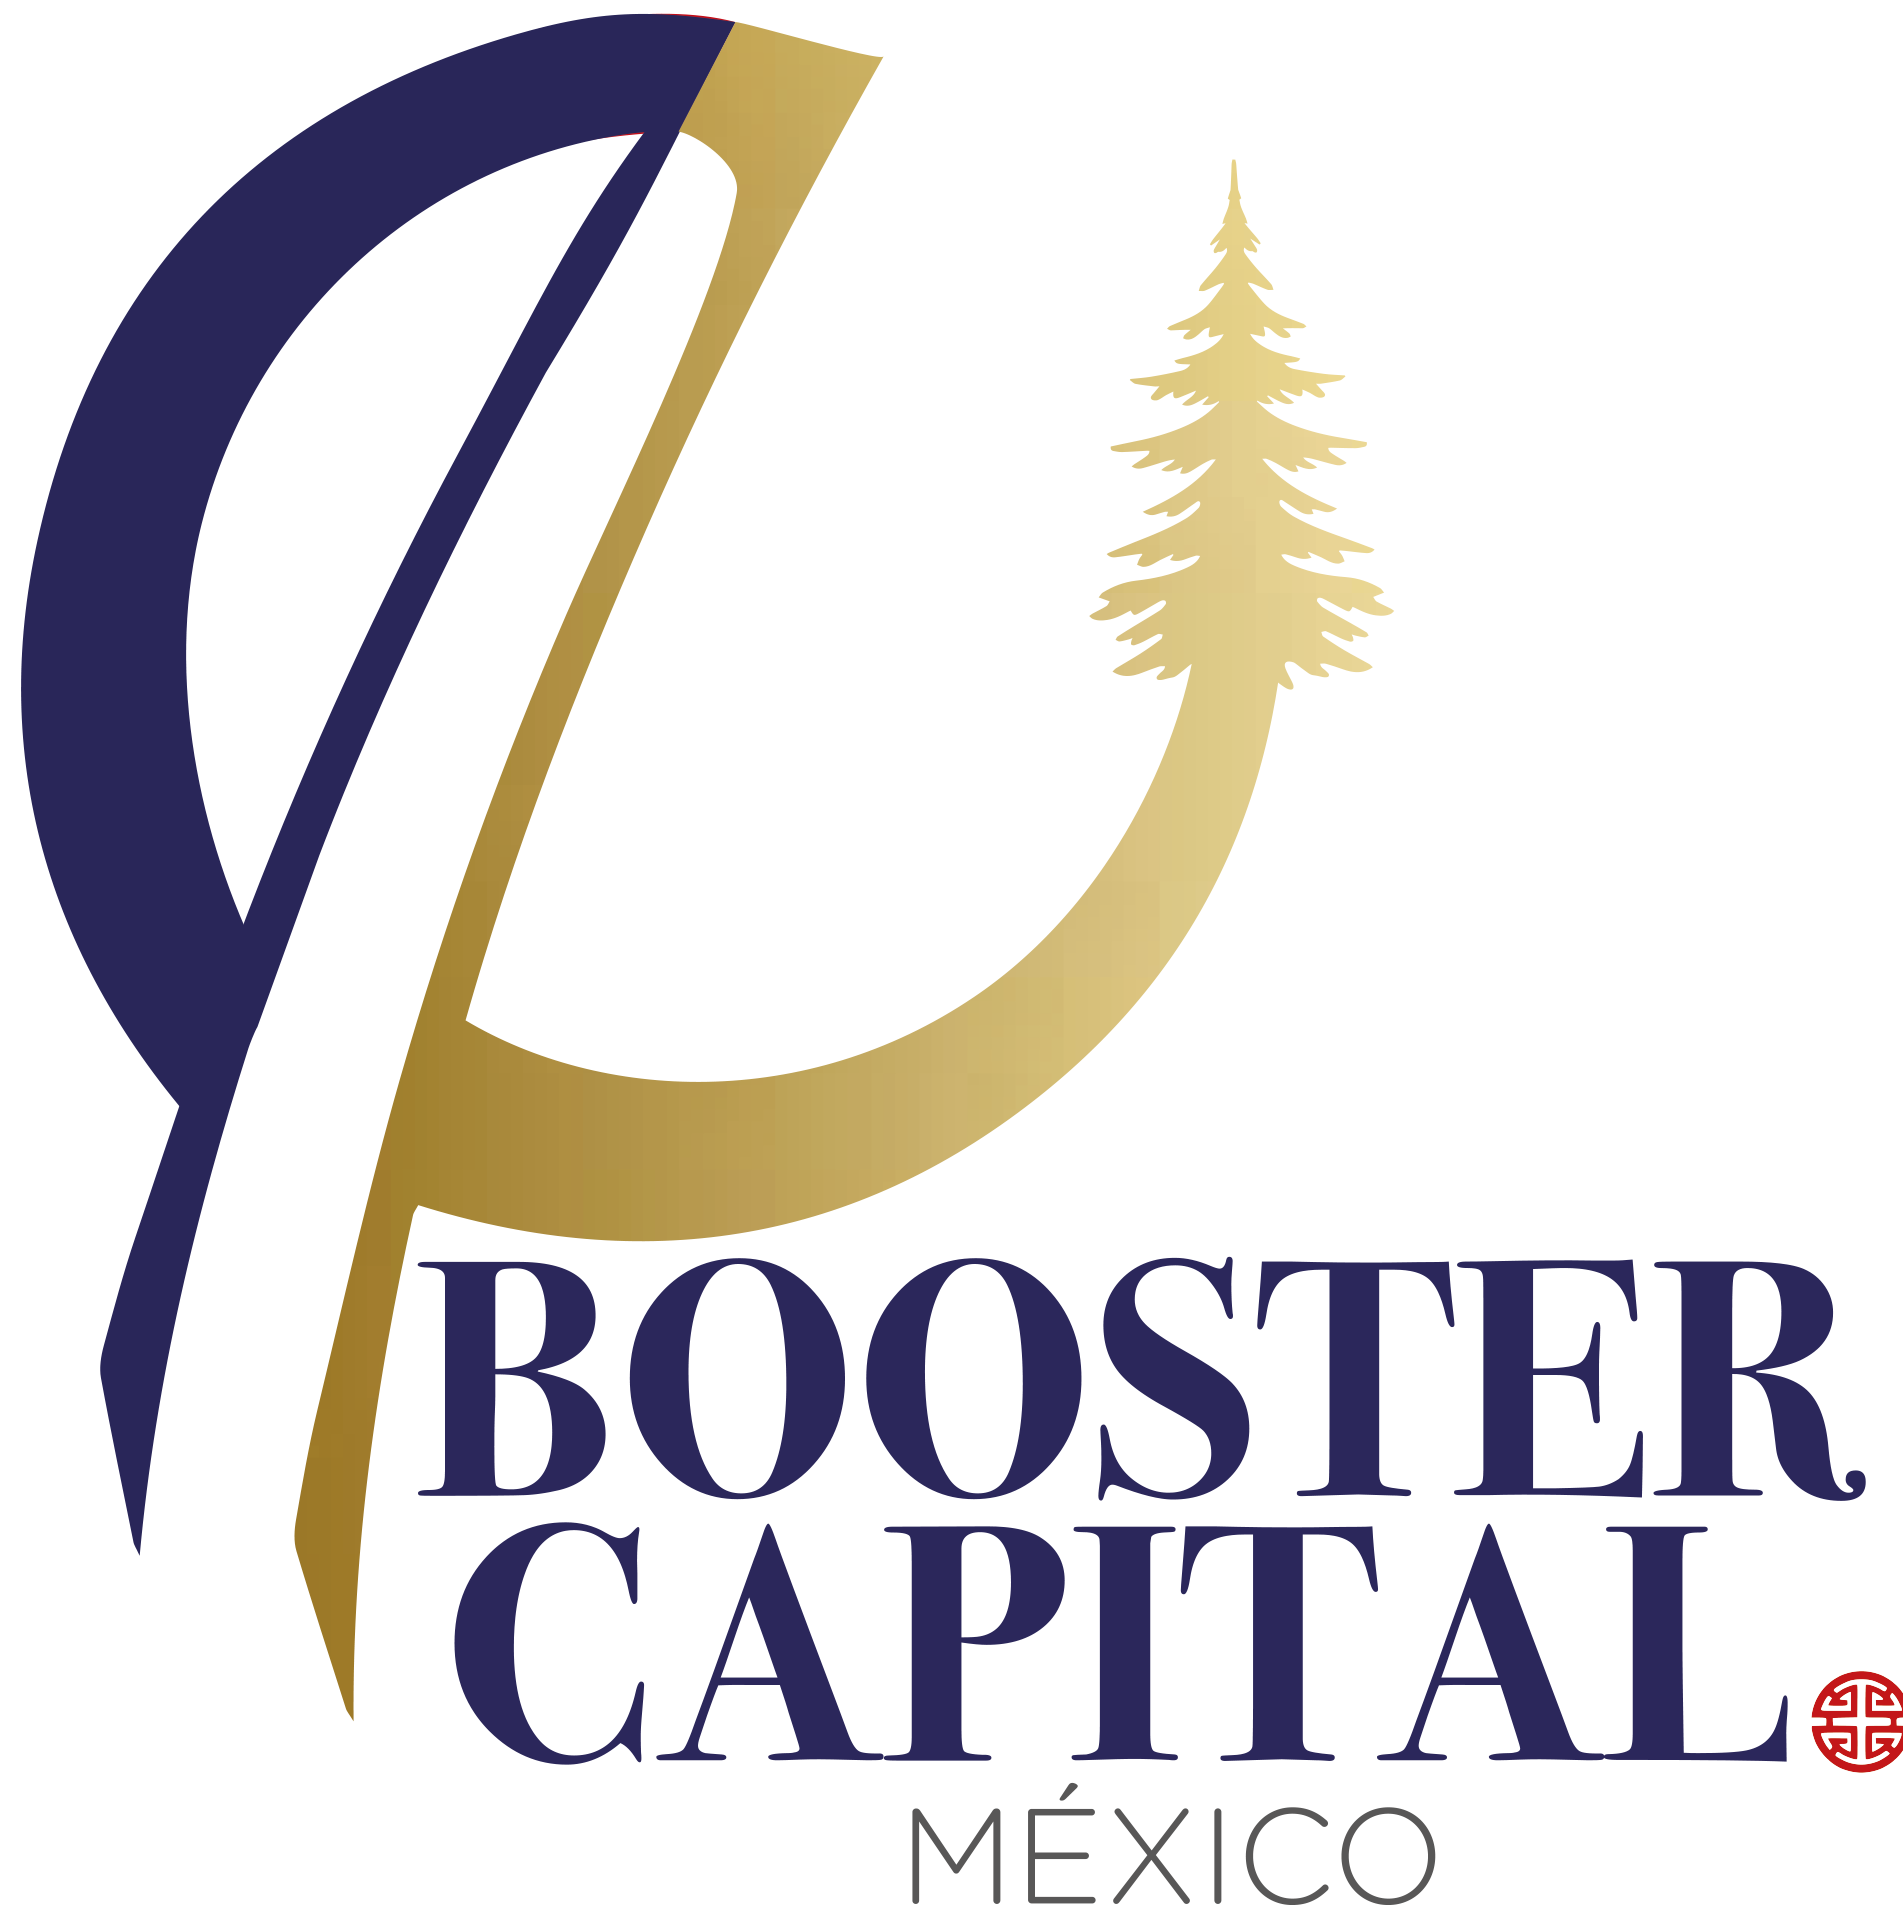 Booster Capital